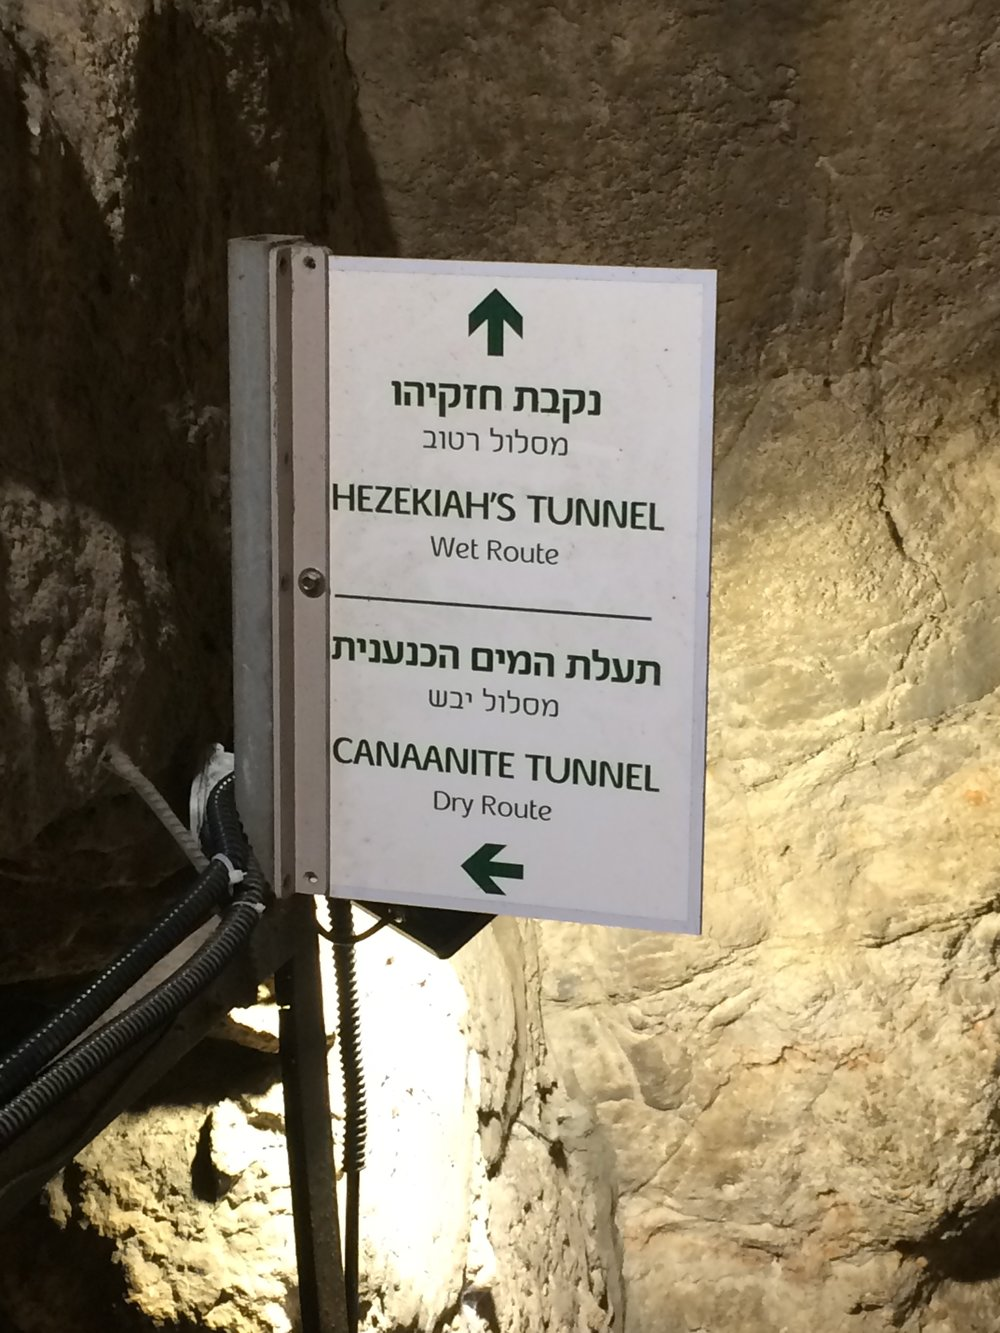 IMG_5869 Hezekiah's Tunnel wet and dry route SIGN.JPG